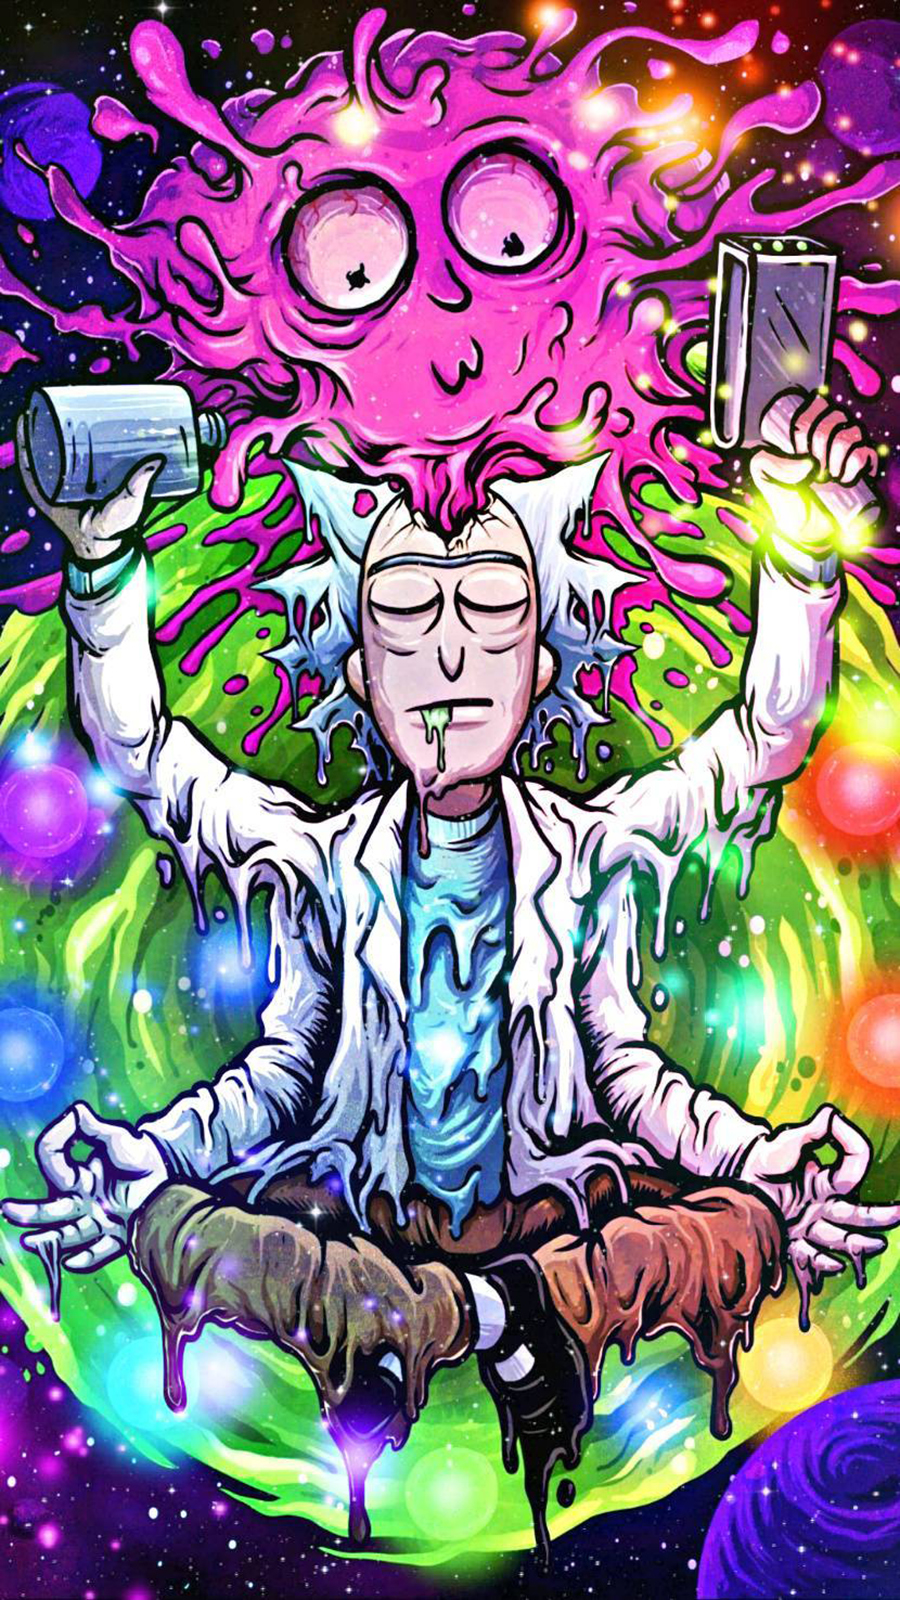 Rick Wallpapers Free Download For Your Device